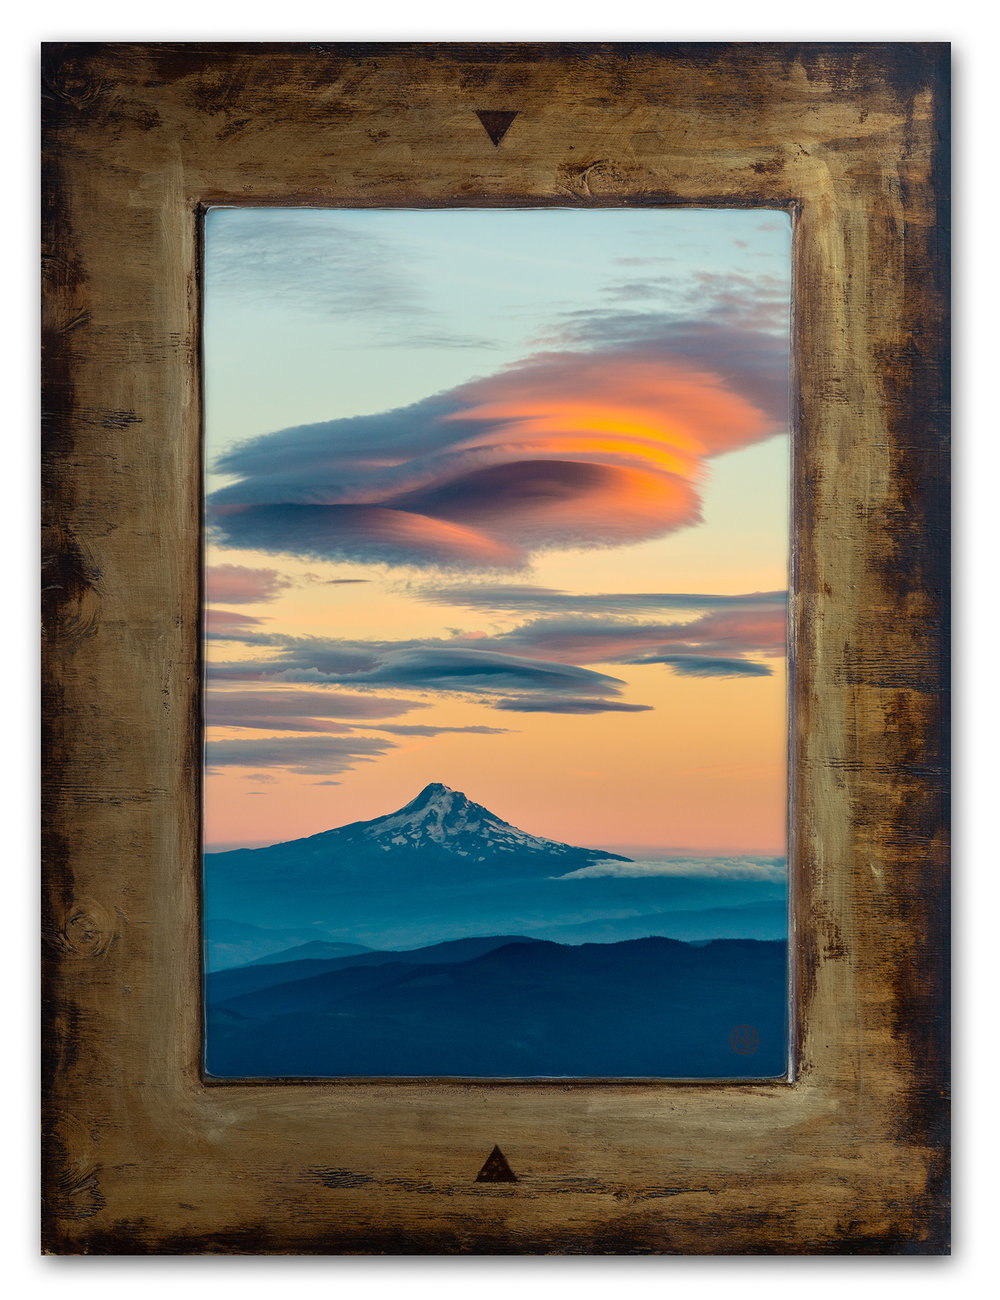 sunset cloud (Mt. hood from Mt adams),  36 x 48 inches